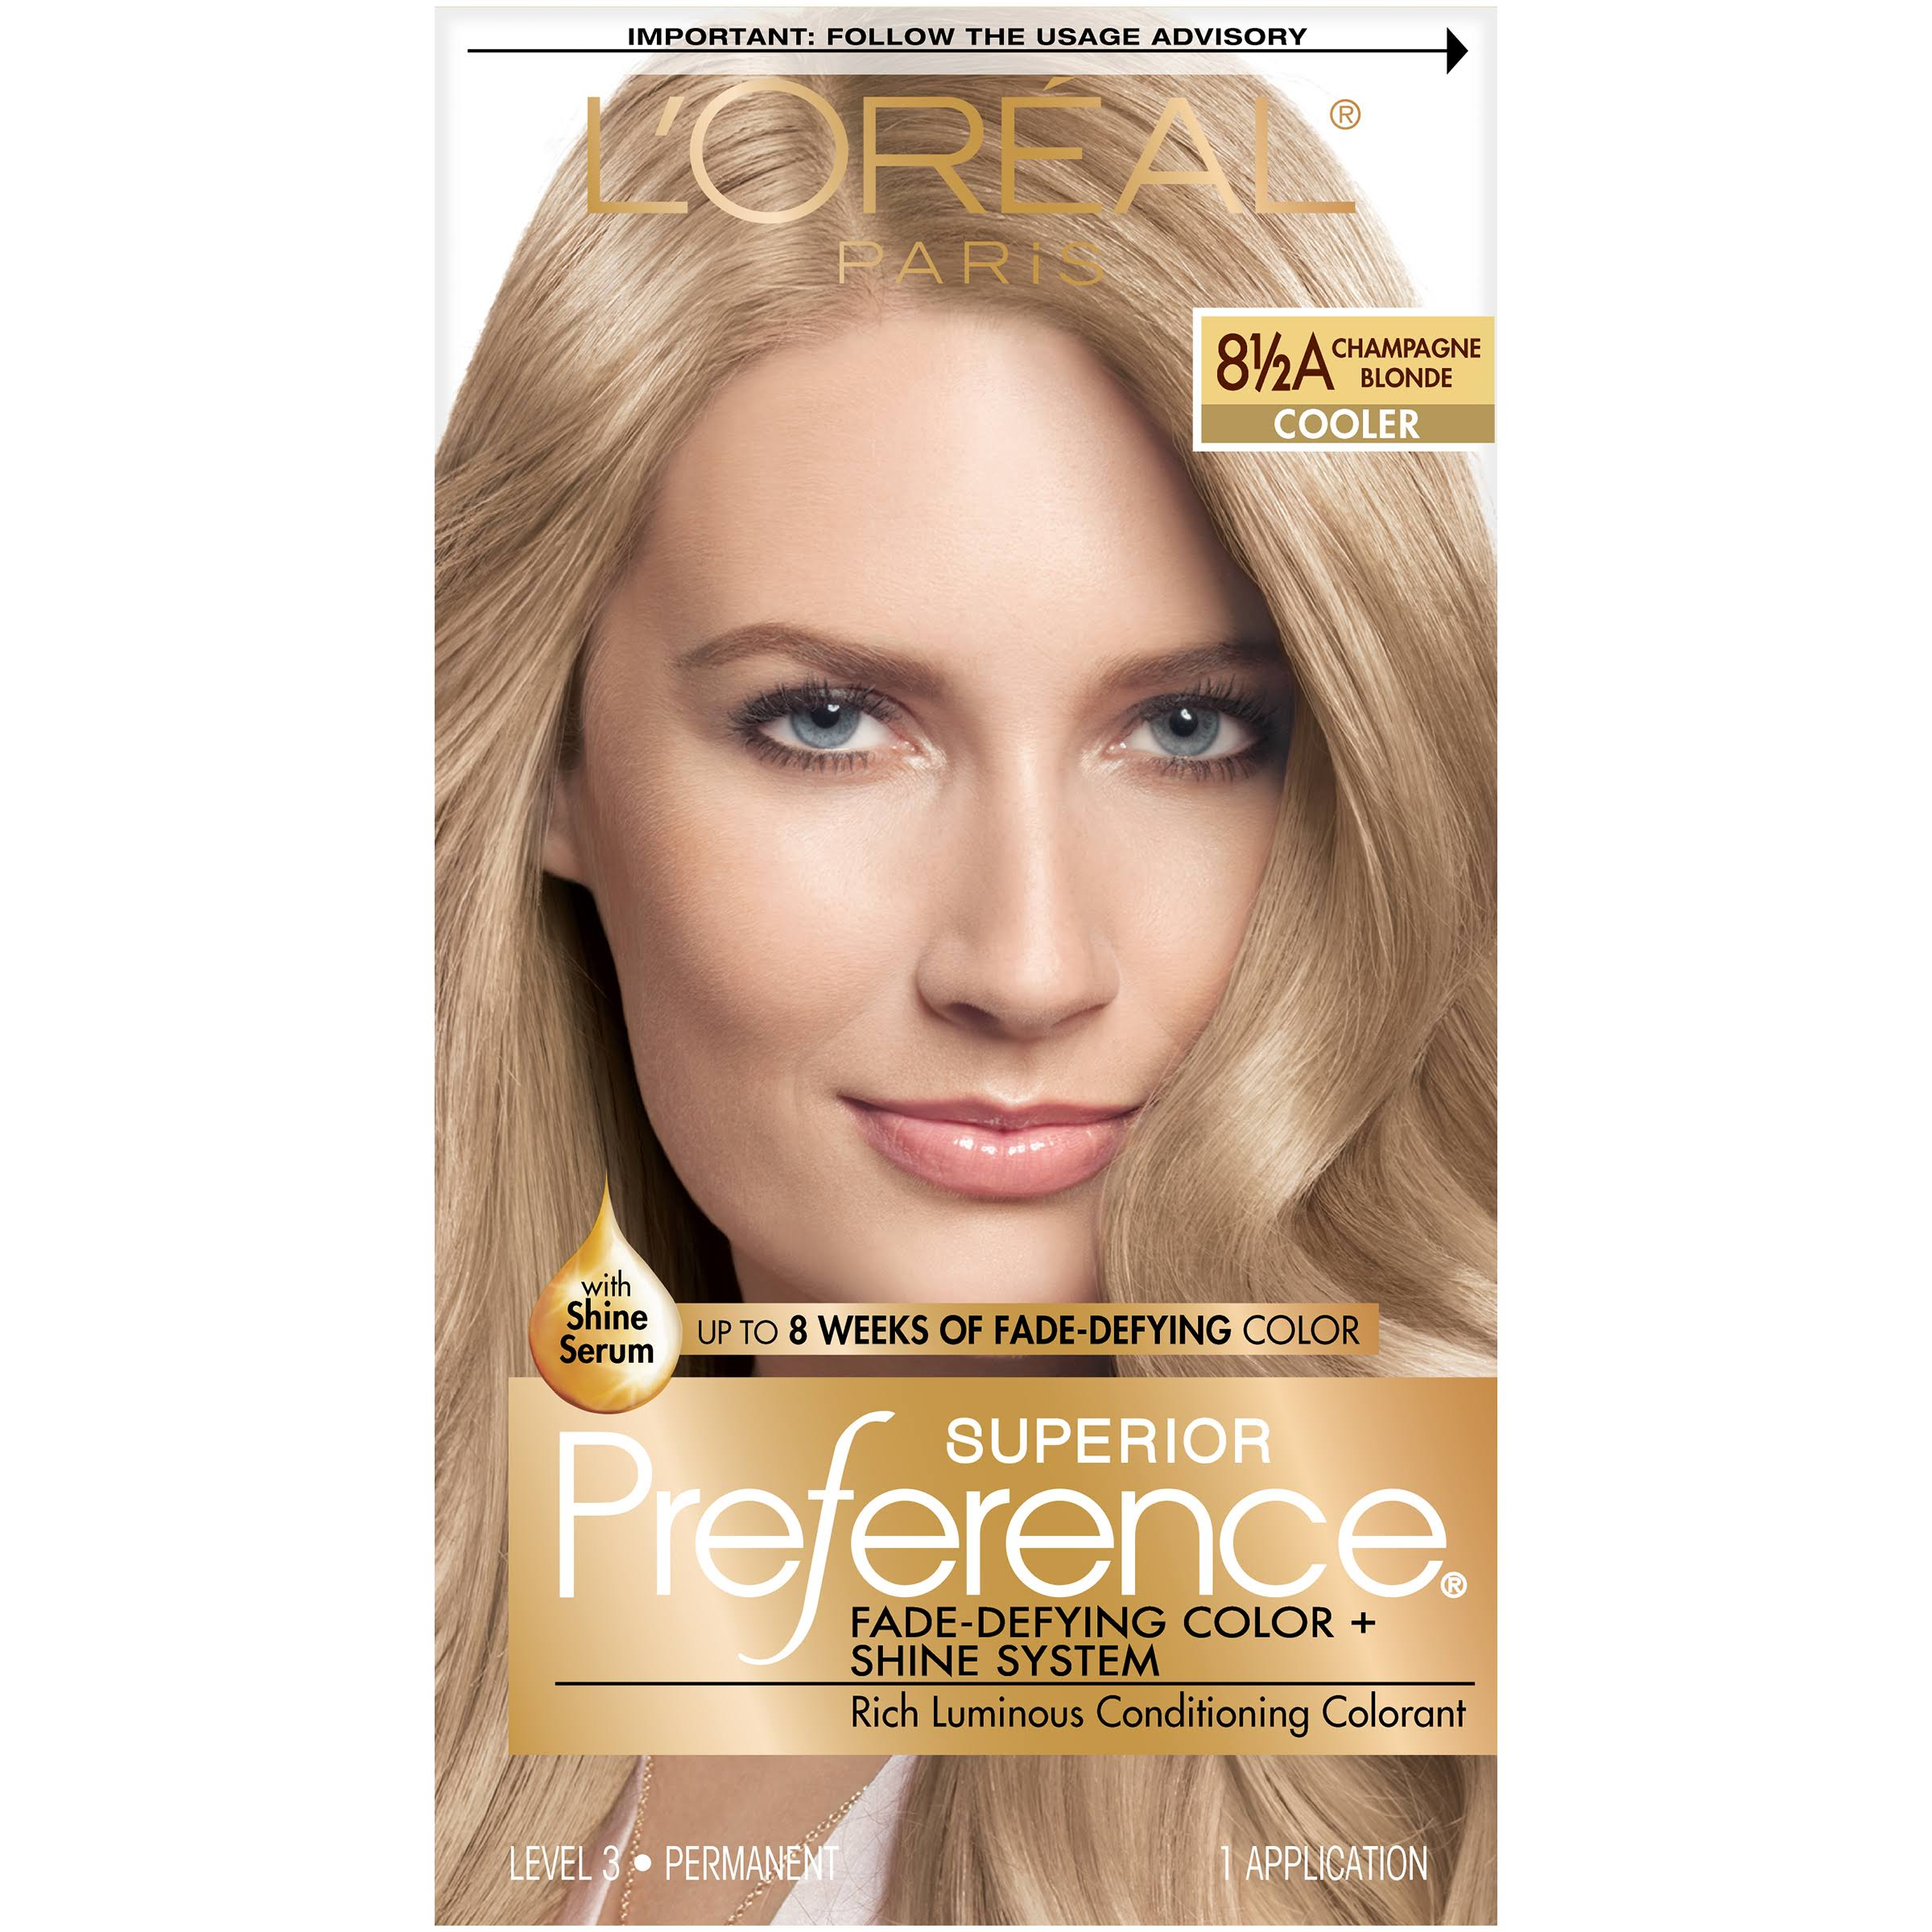 L'Oreal Paris Superior Preference Permanent Hair Color - 8.5A Champagne Blonde